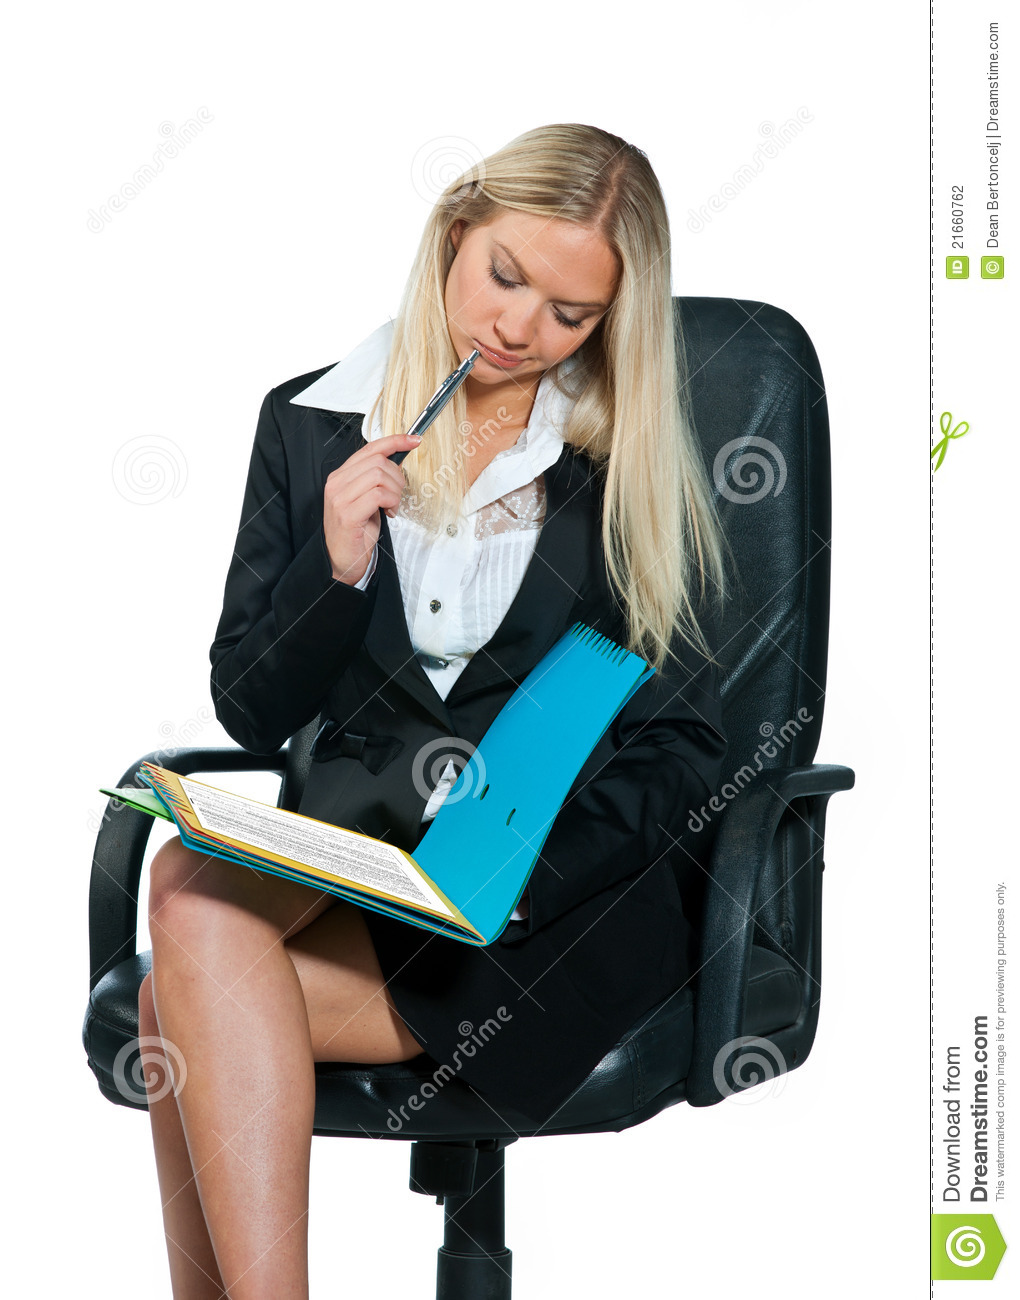 Office furniture for women Elegant Remarkable Business Woman Sitting In Office Chair With Documants 1020 1300 265 Kb Office Chairs Office Chairs Office Chairs For Women